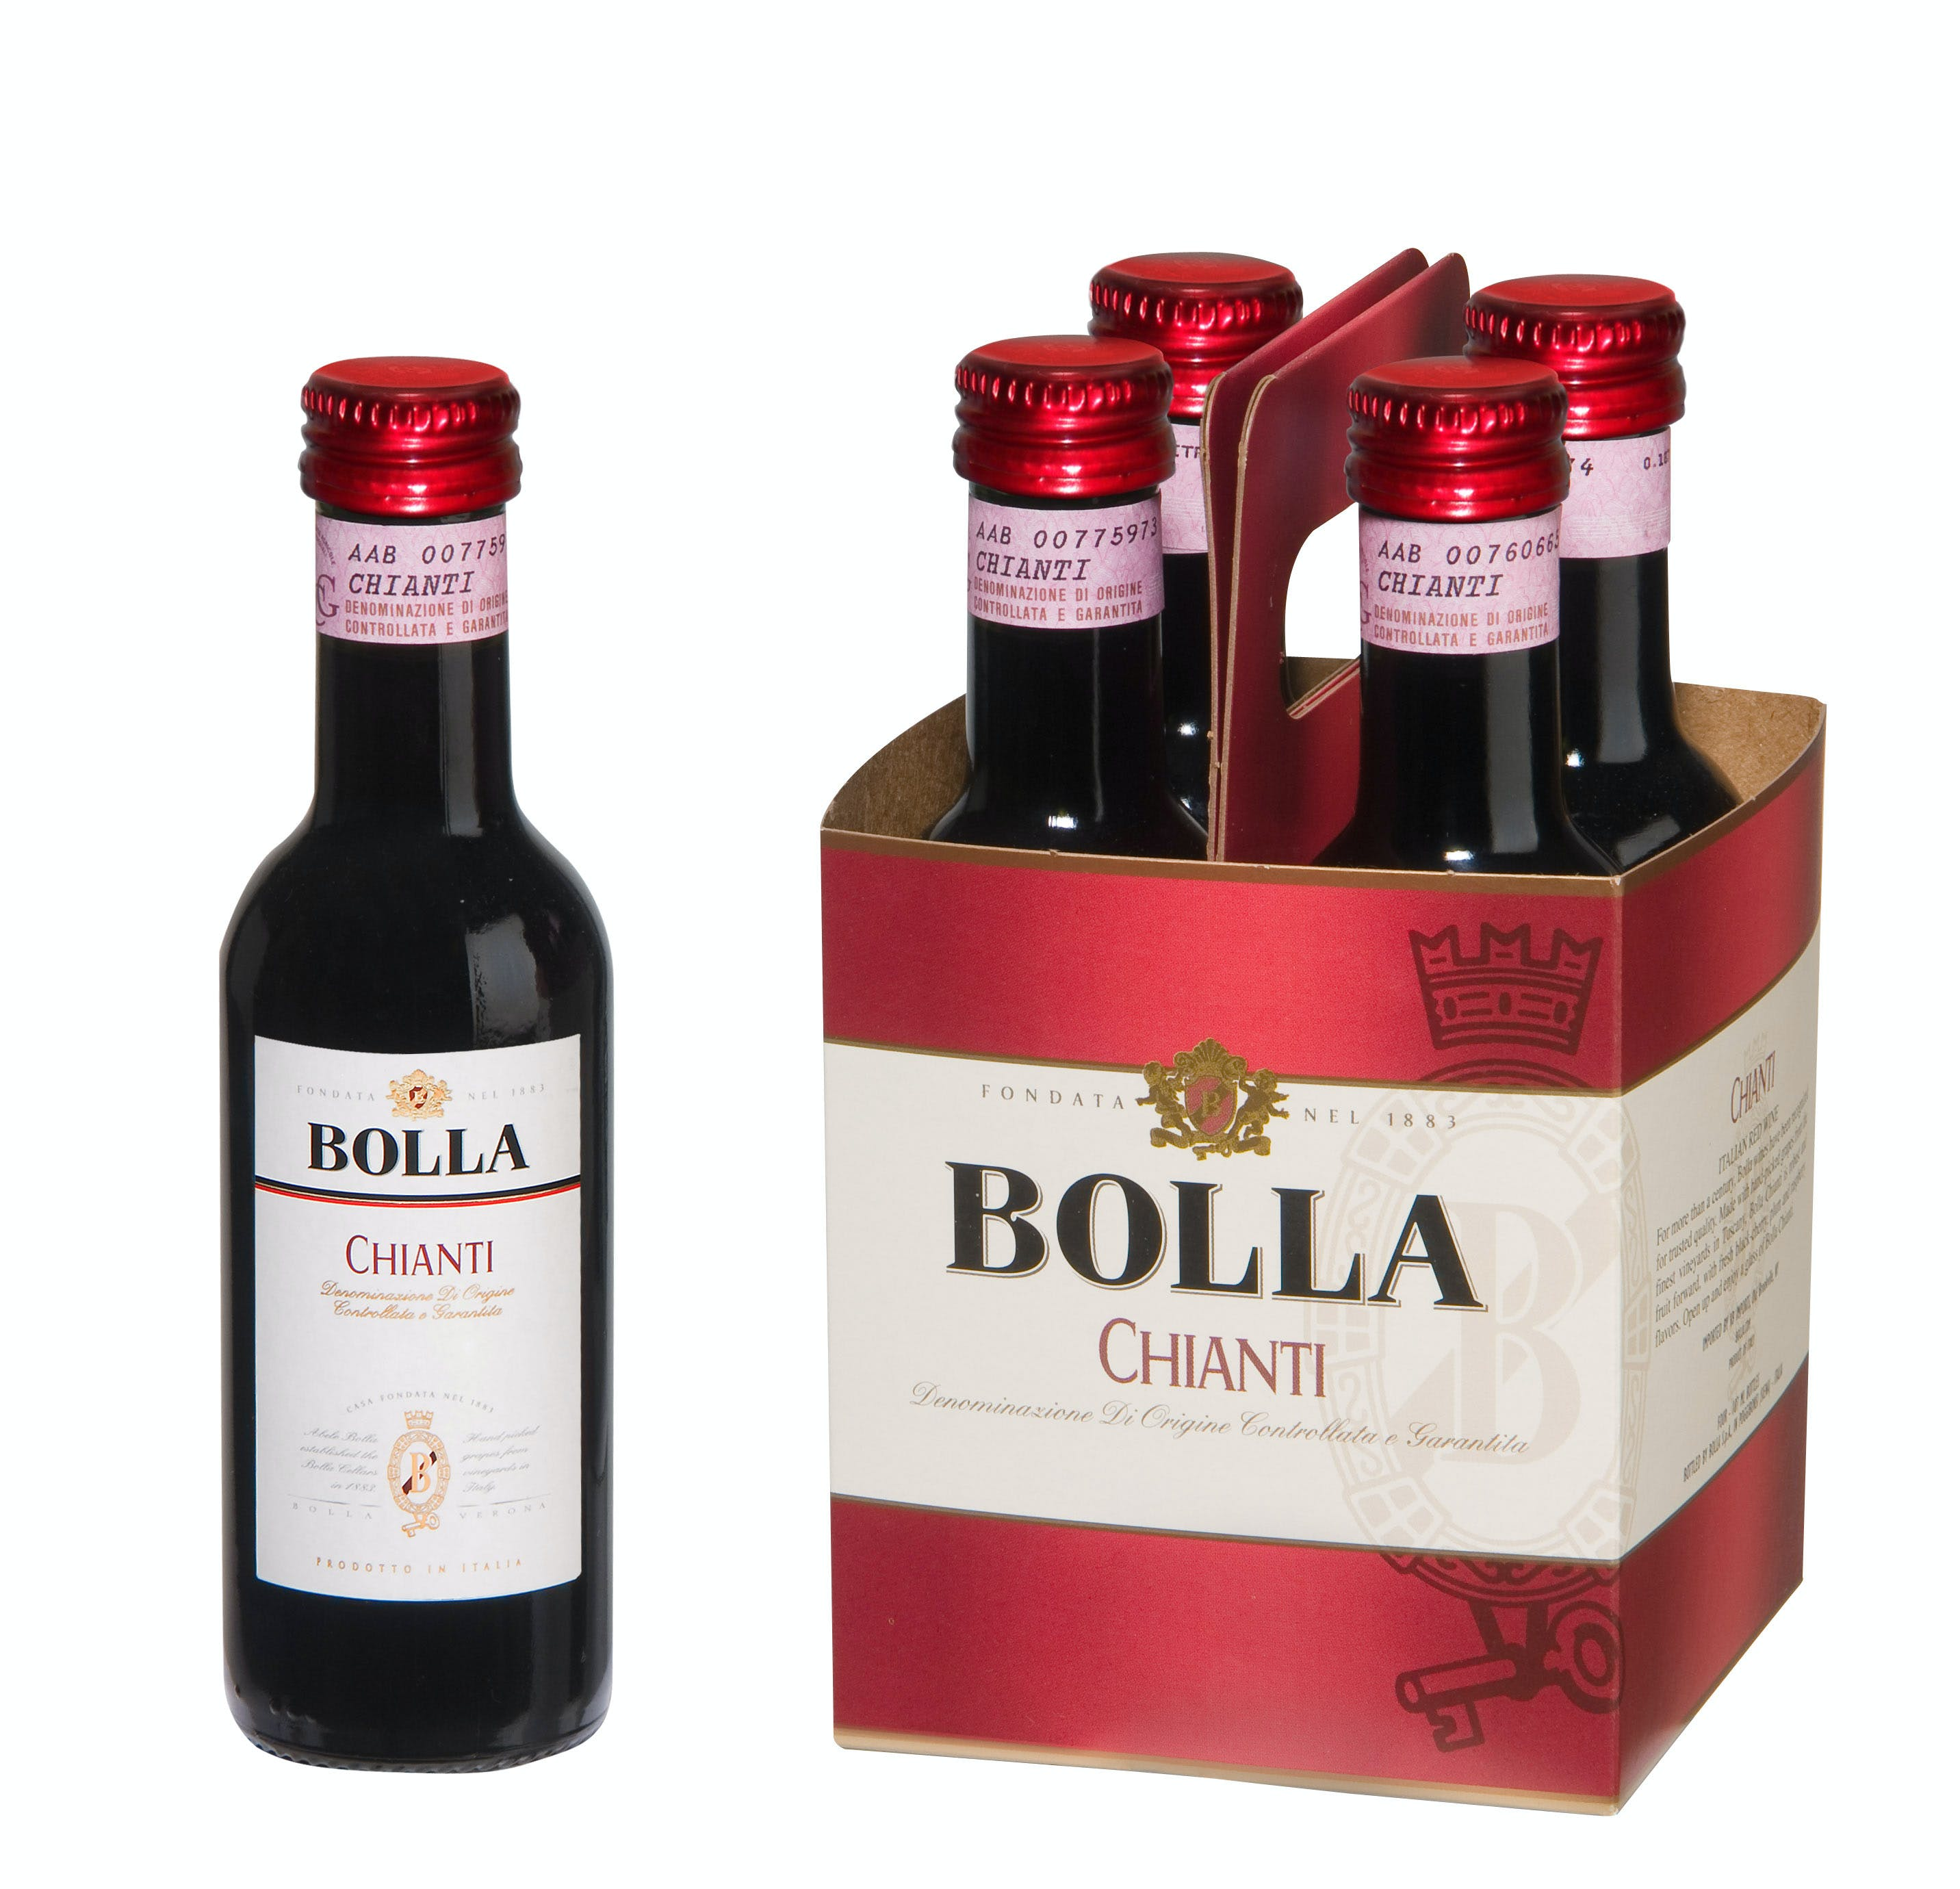 Bolla Chianti 2015 4 Pack 187ml Glass Bottle Argonaut Liquor